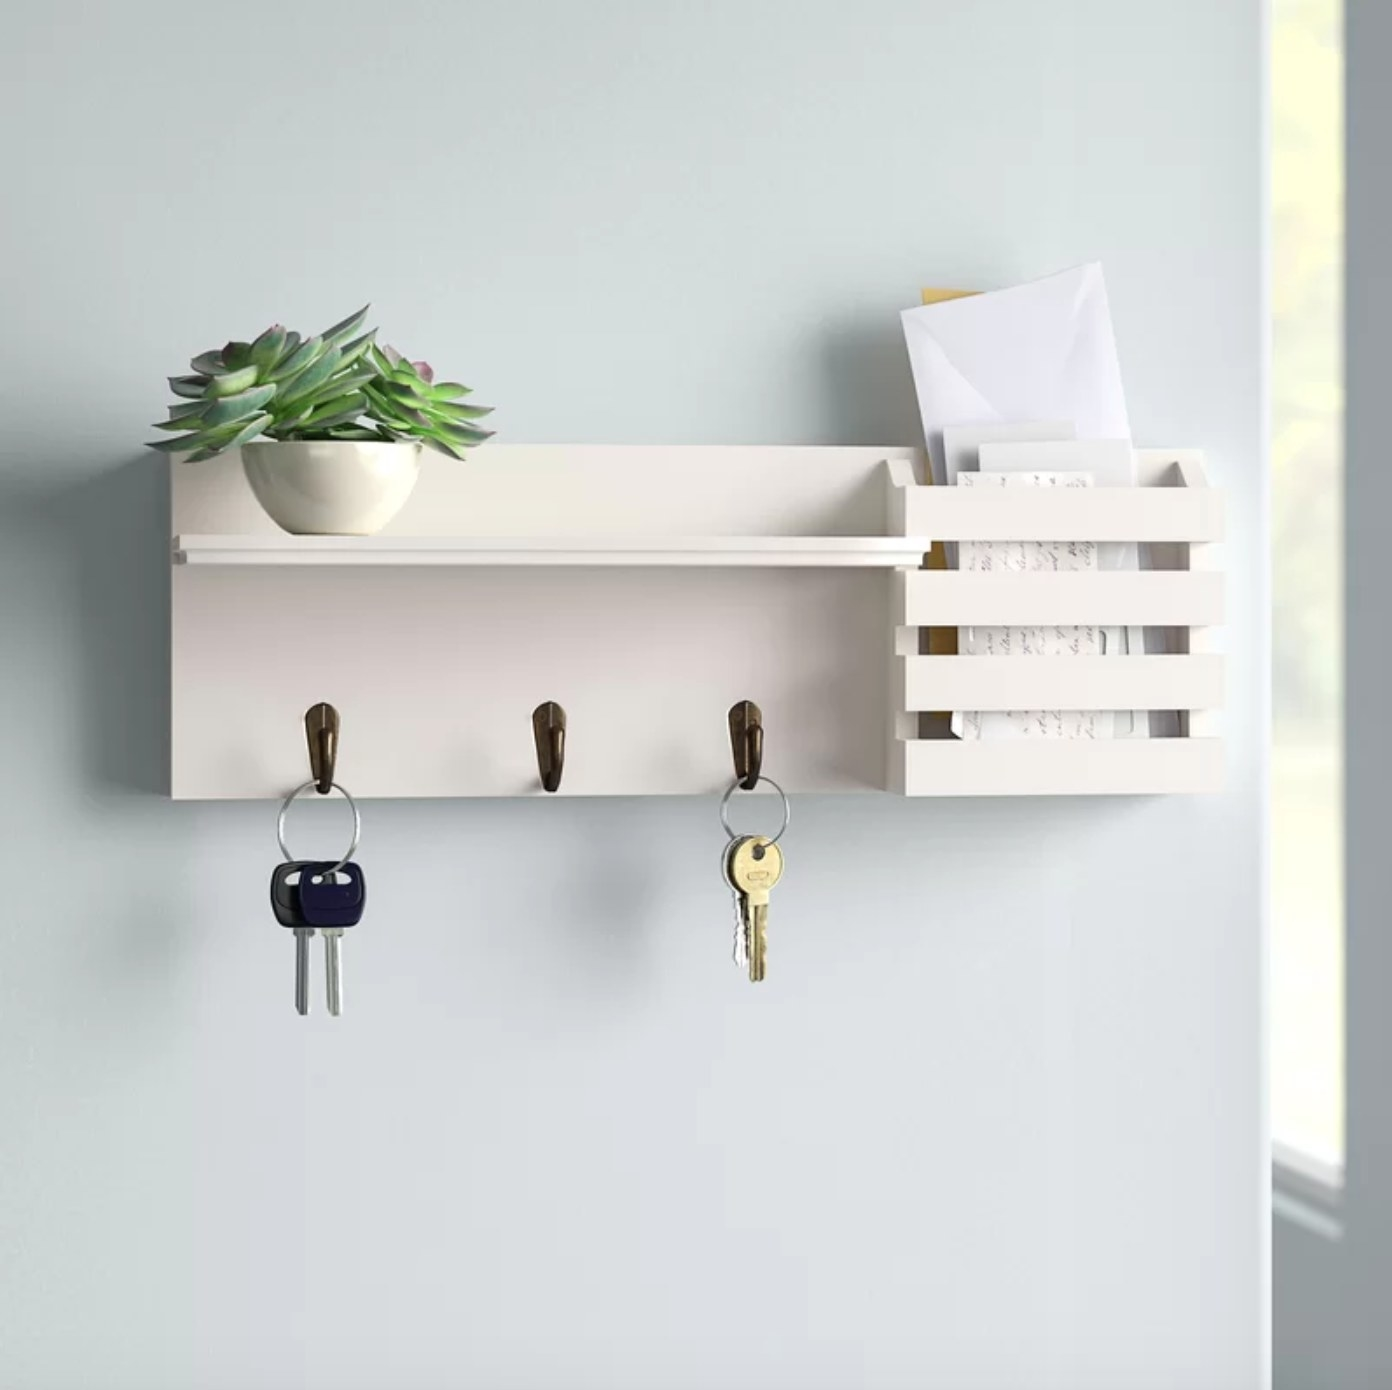 The shelf with hanging hooks in white